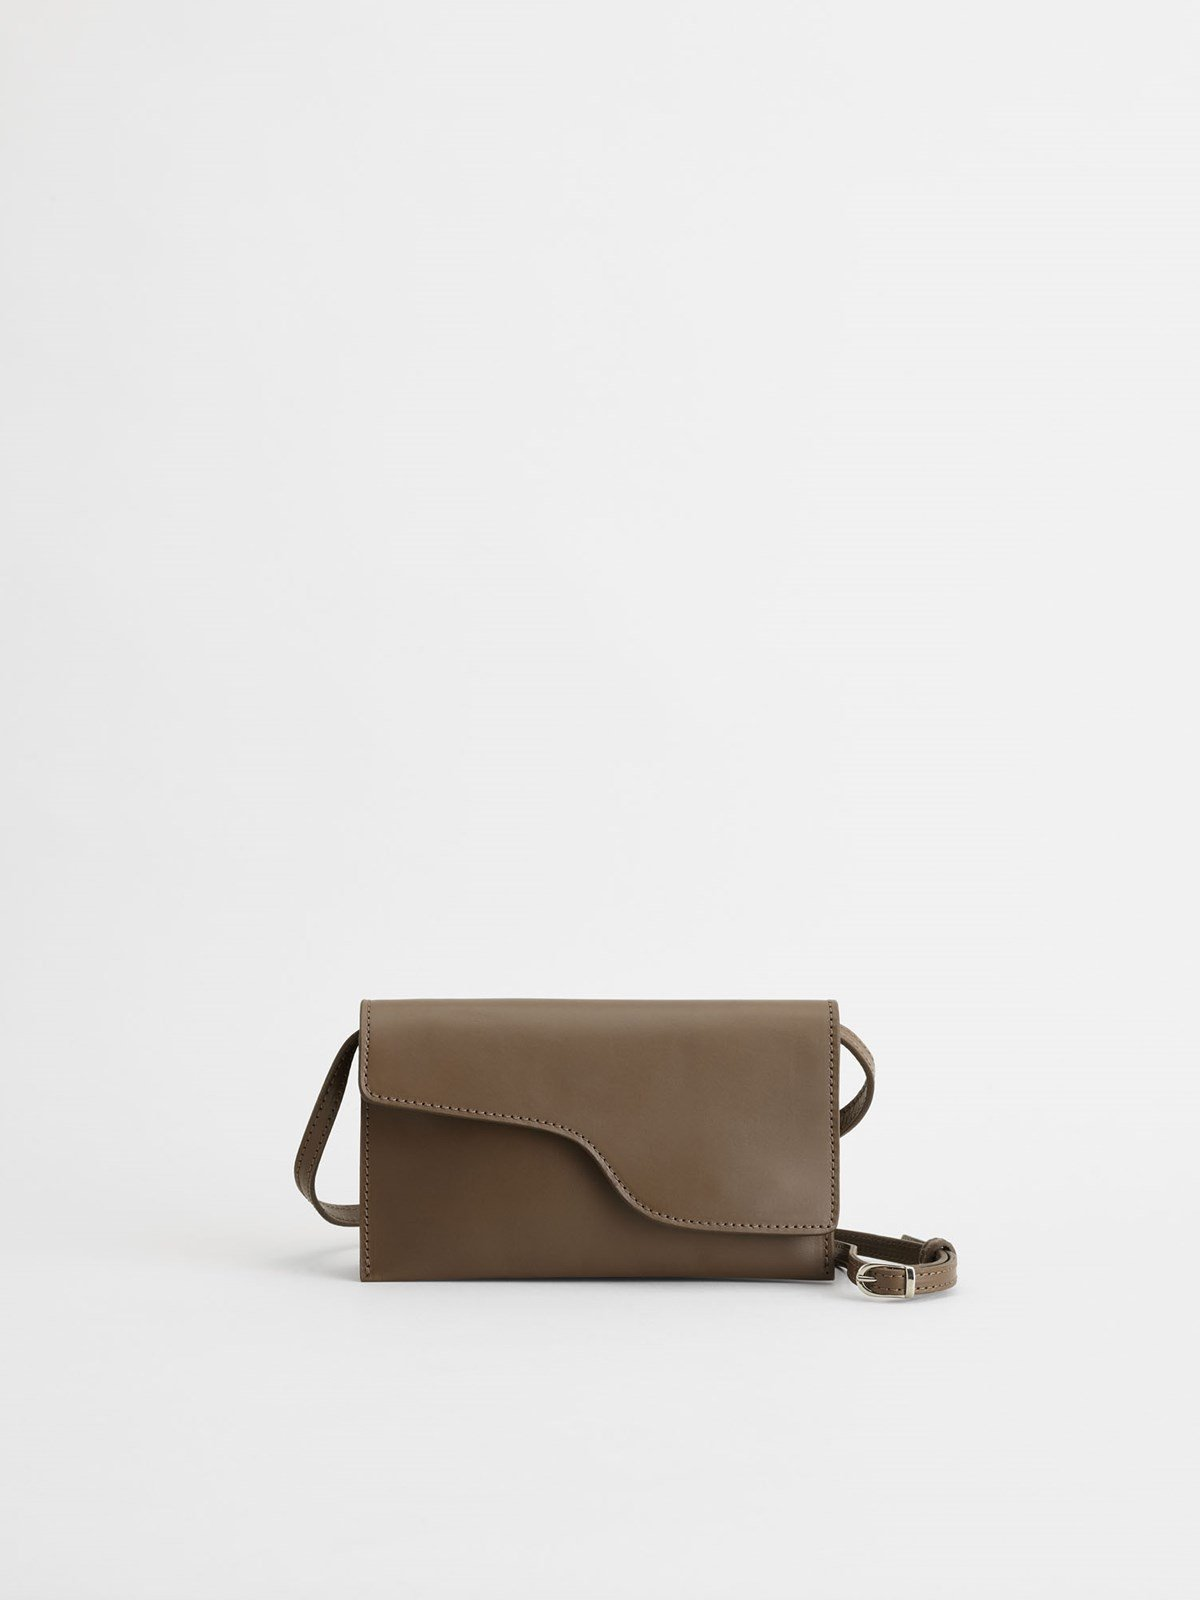 Ulignano Khaki Brown Baguette bag